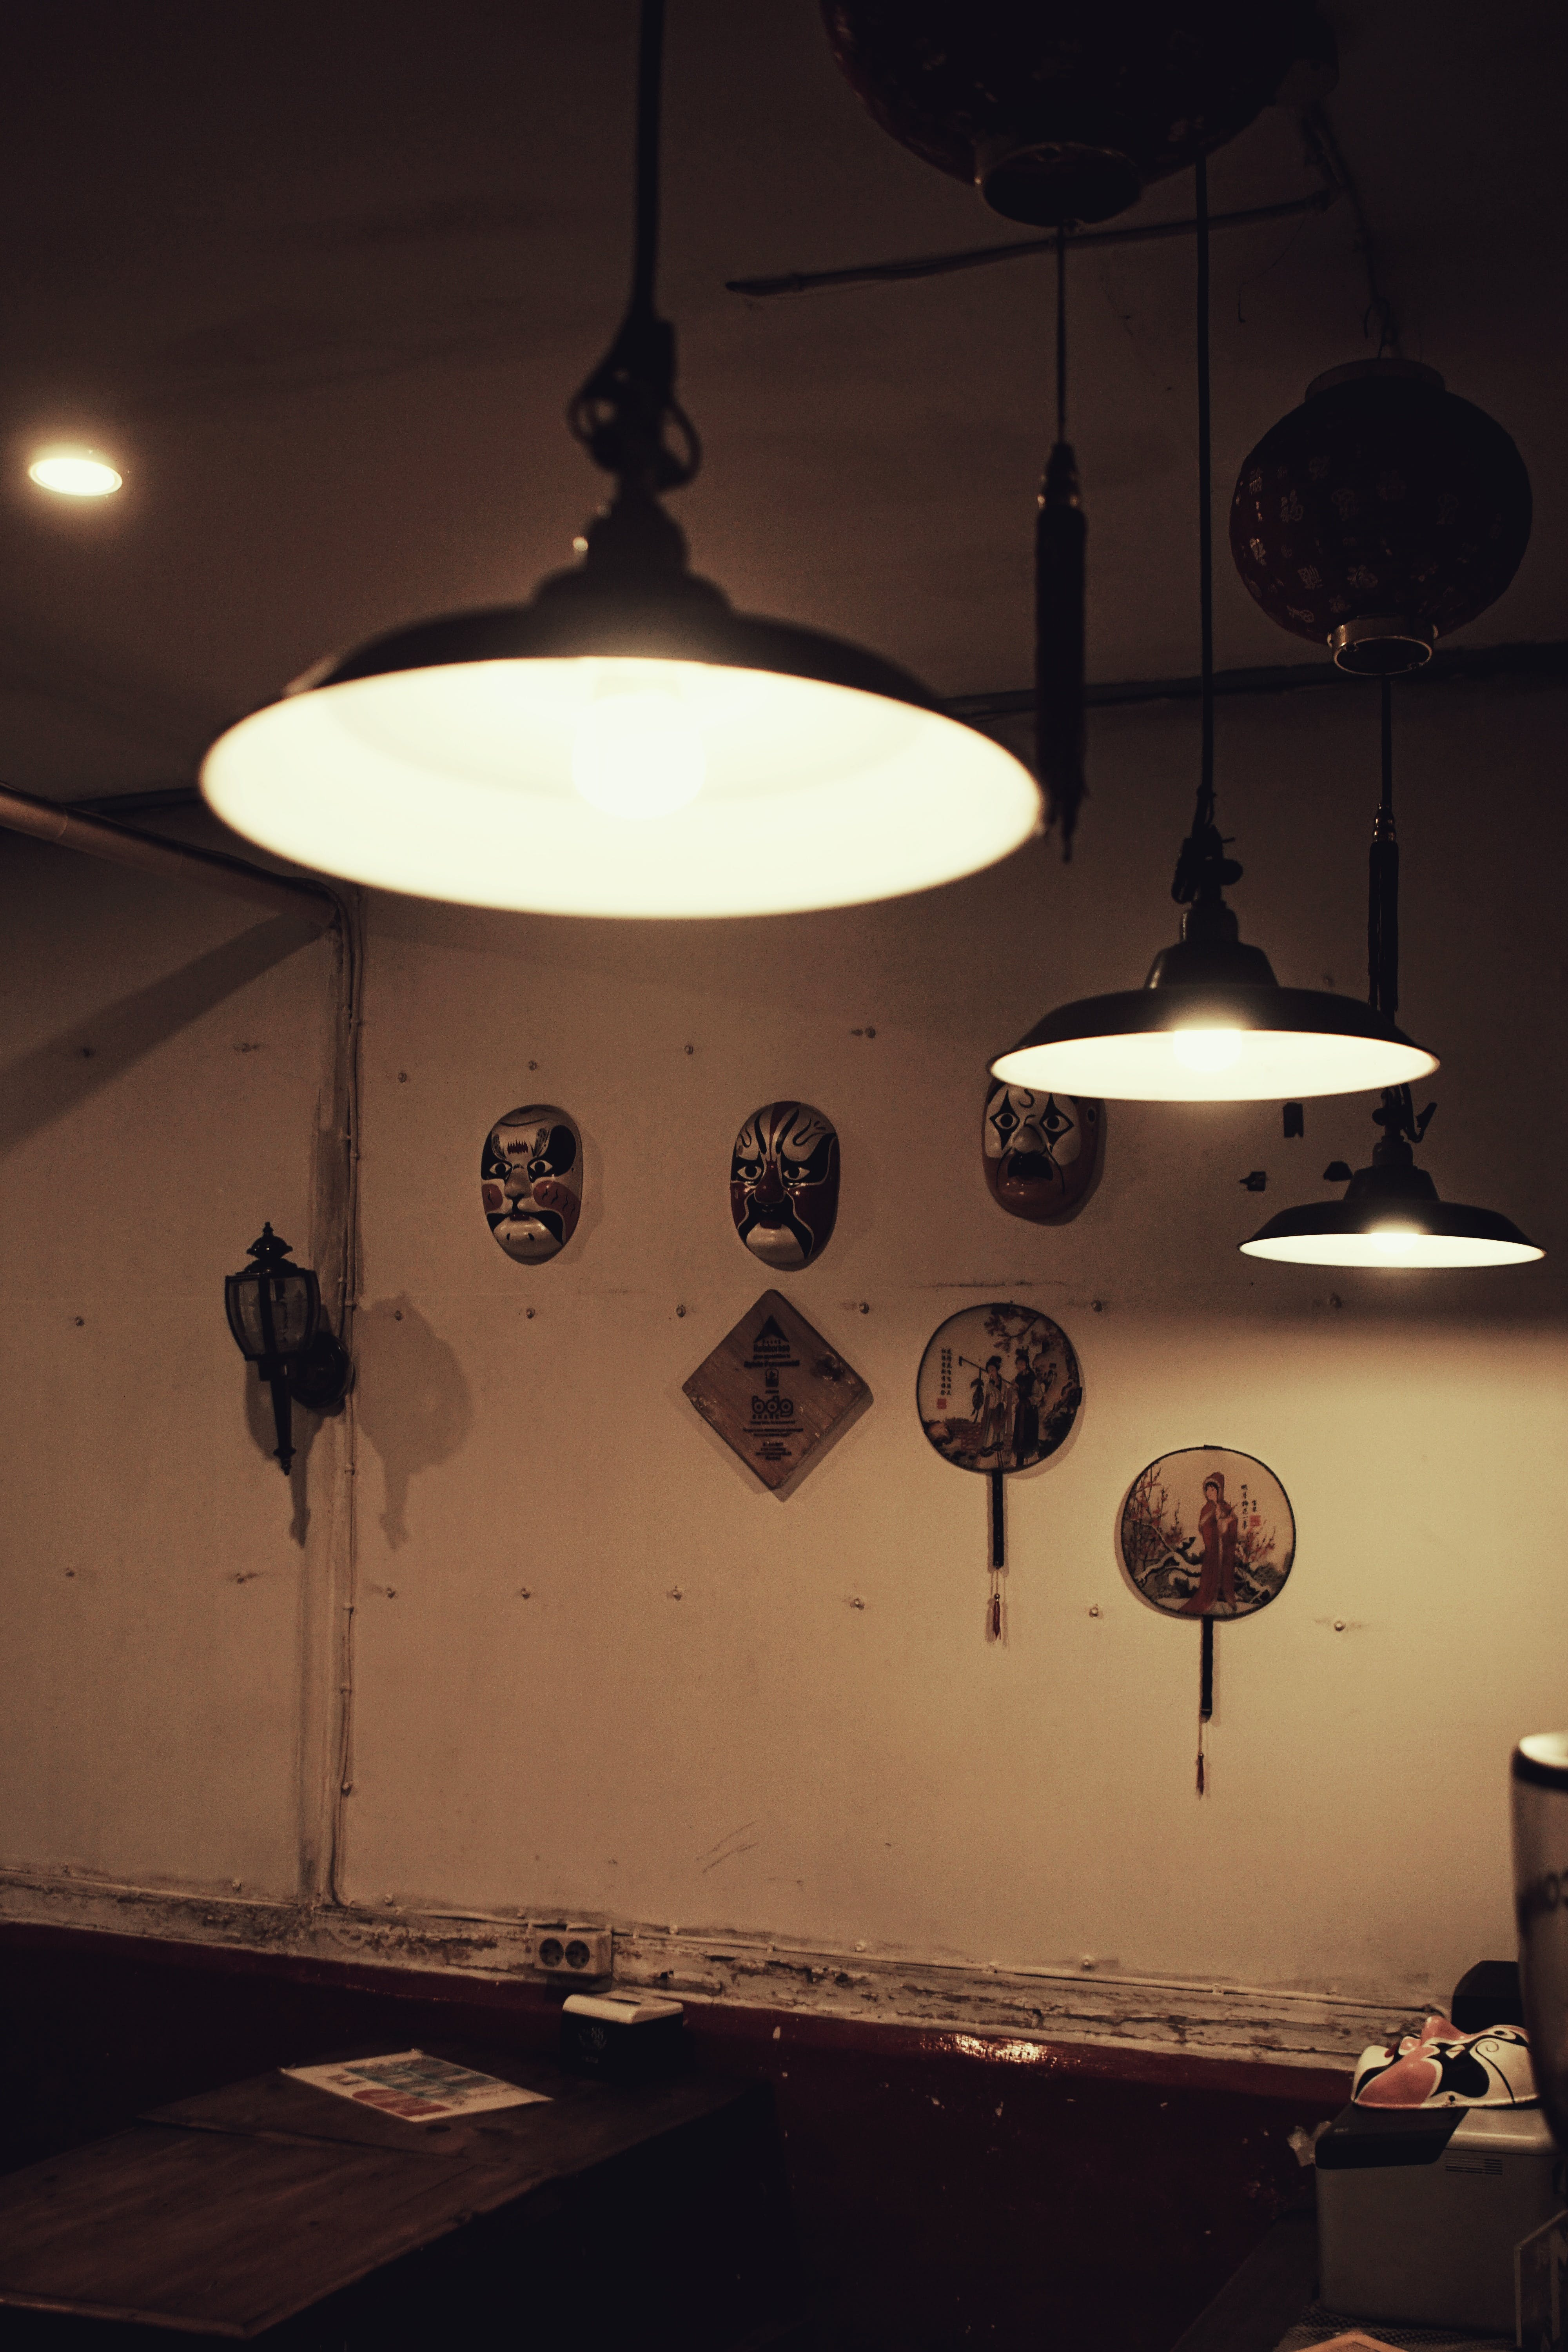 Free stock photo of mask, Chinese, coffee shop, interior design